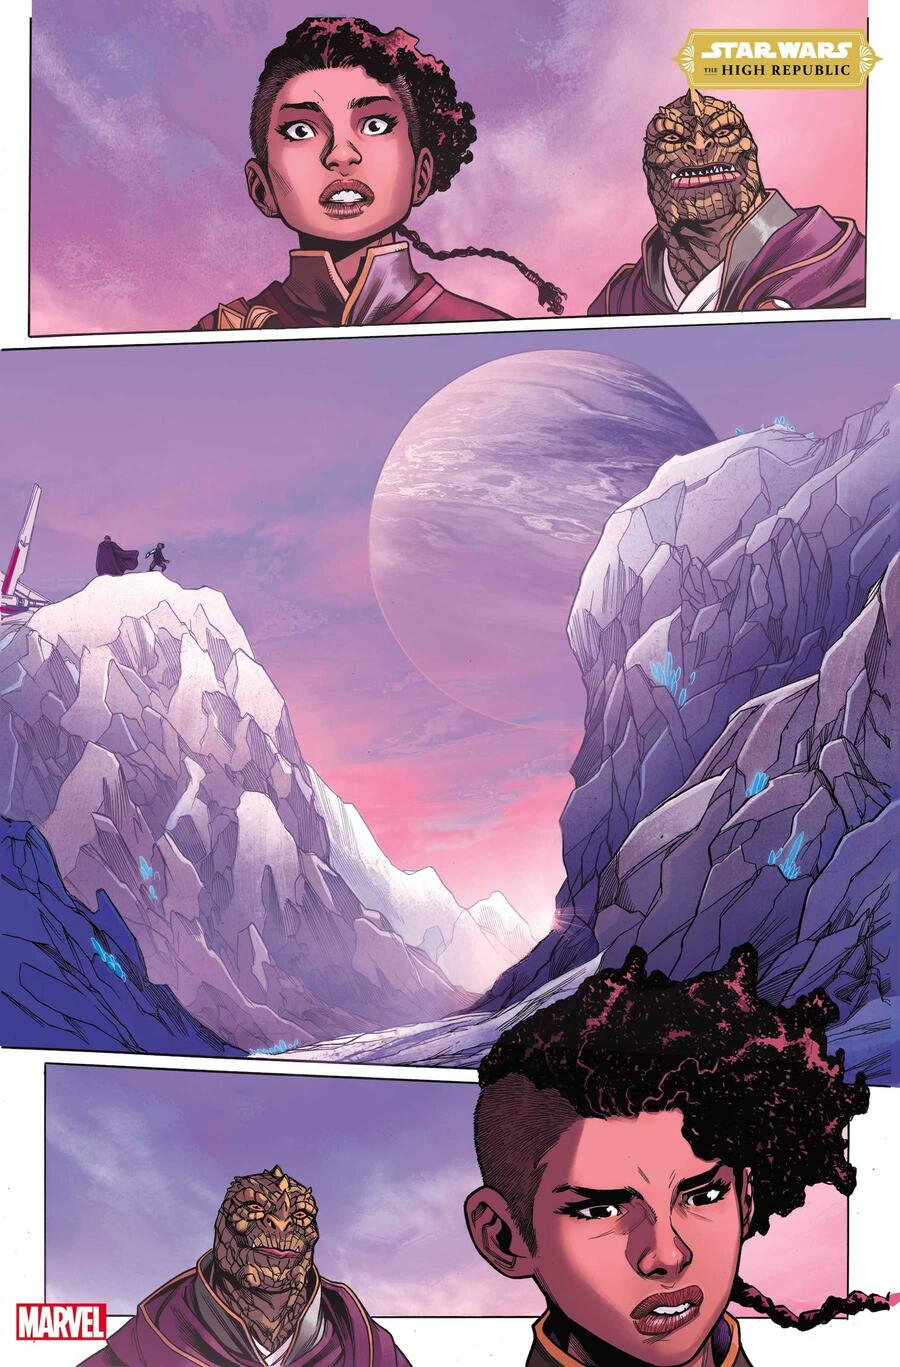 STAR WARS: THE HIGH REPUBLIC #4 preview art by Ario Anindito with inks by Mark Morales and colors by Annalisa Leoni